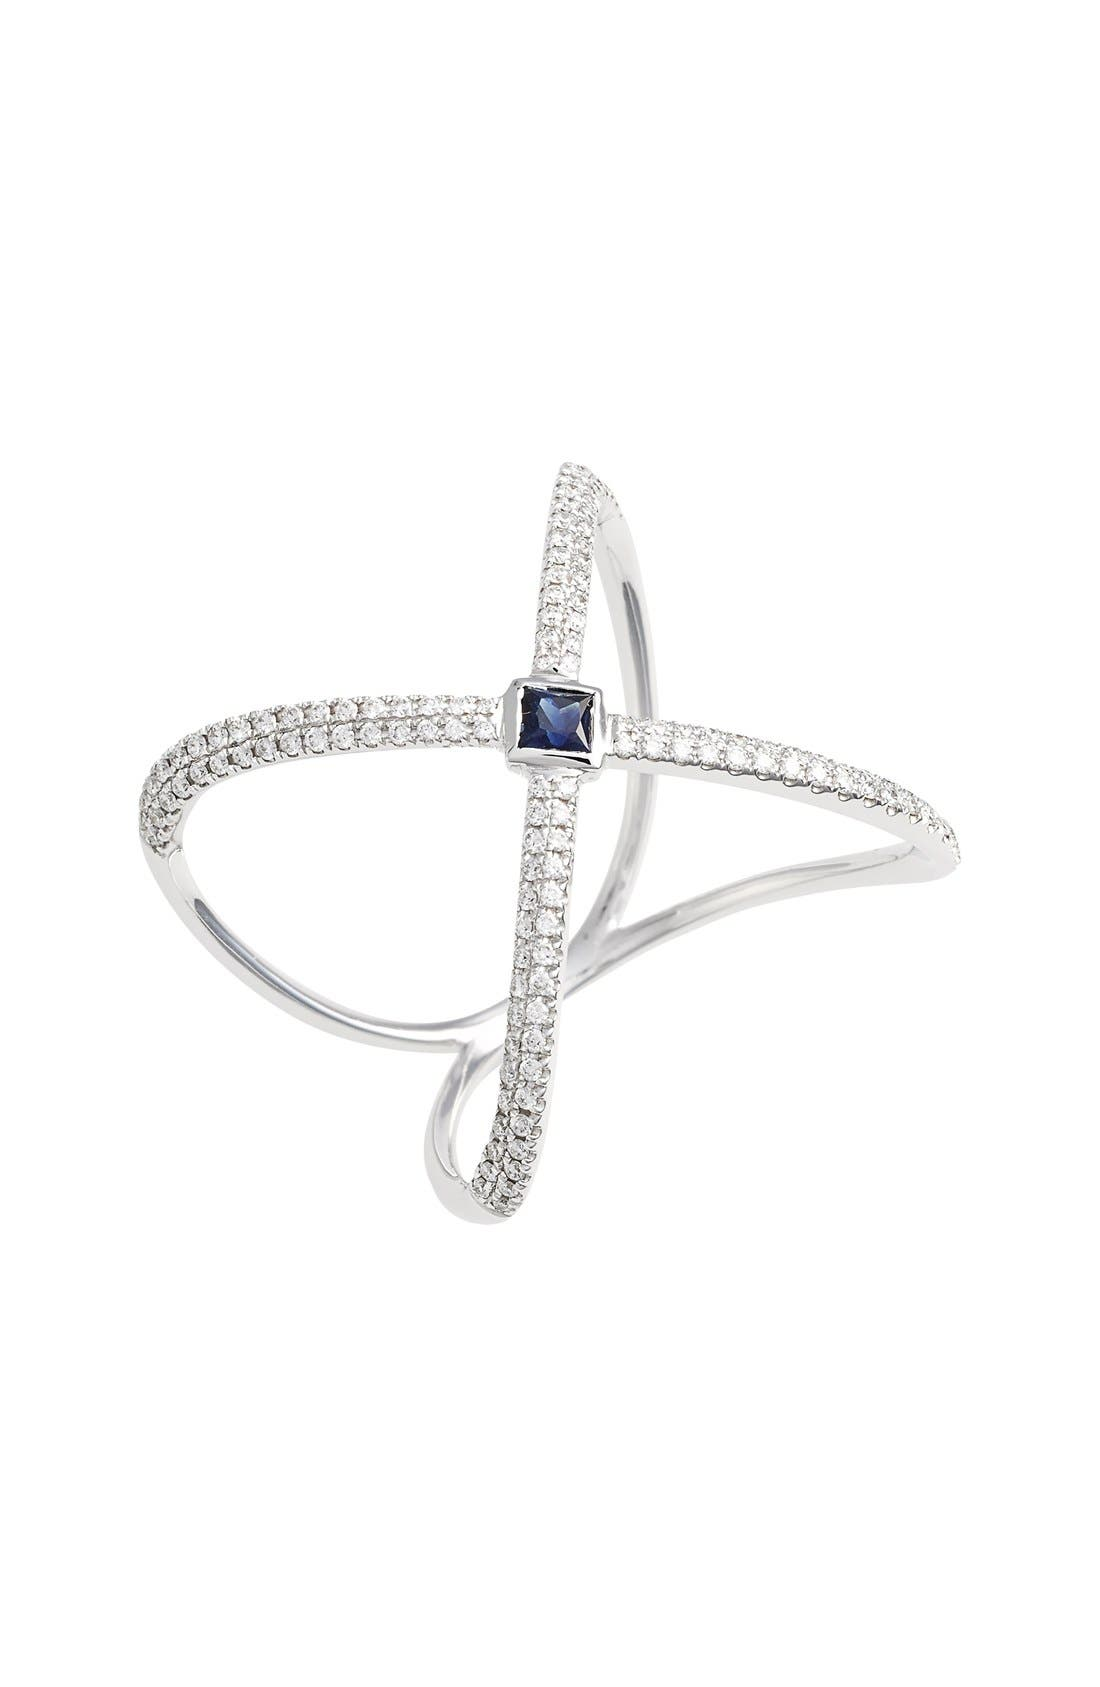 Main Image - Bony Levy Diamond & Gem Crossover Ring (Nordstrom Exclusive)